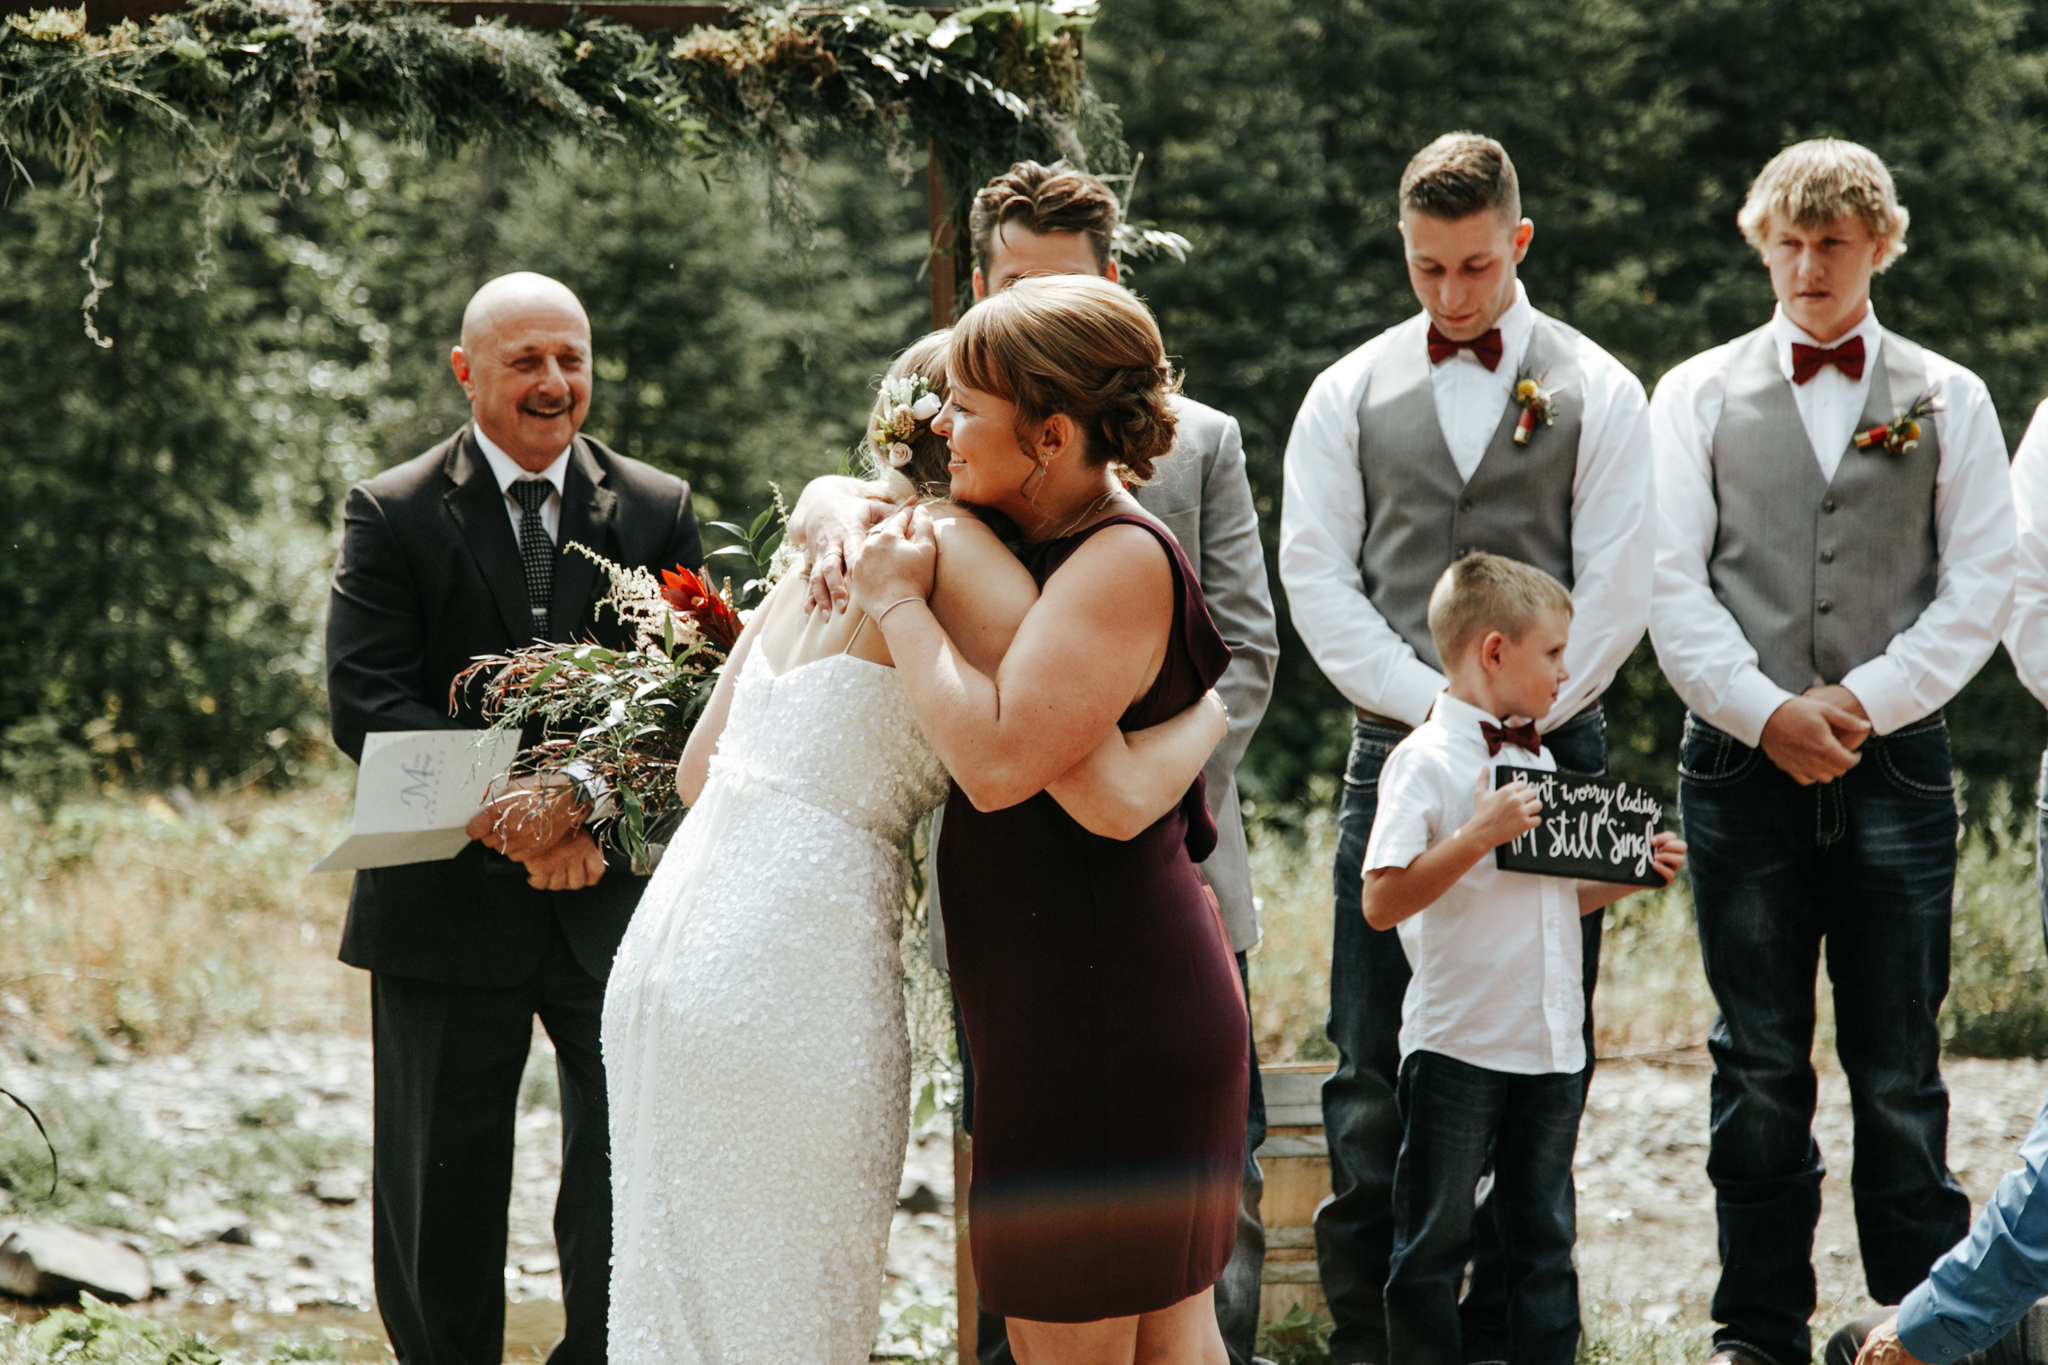 castle-mountain-wedding-photographer-love-and-be-loved-photography-lethbridge-pincher-creek-crowsnest-pass-yannick-rylee-photo-image-picture-66.jpg